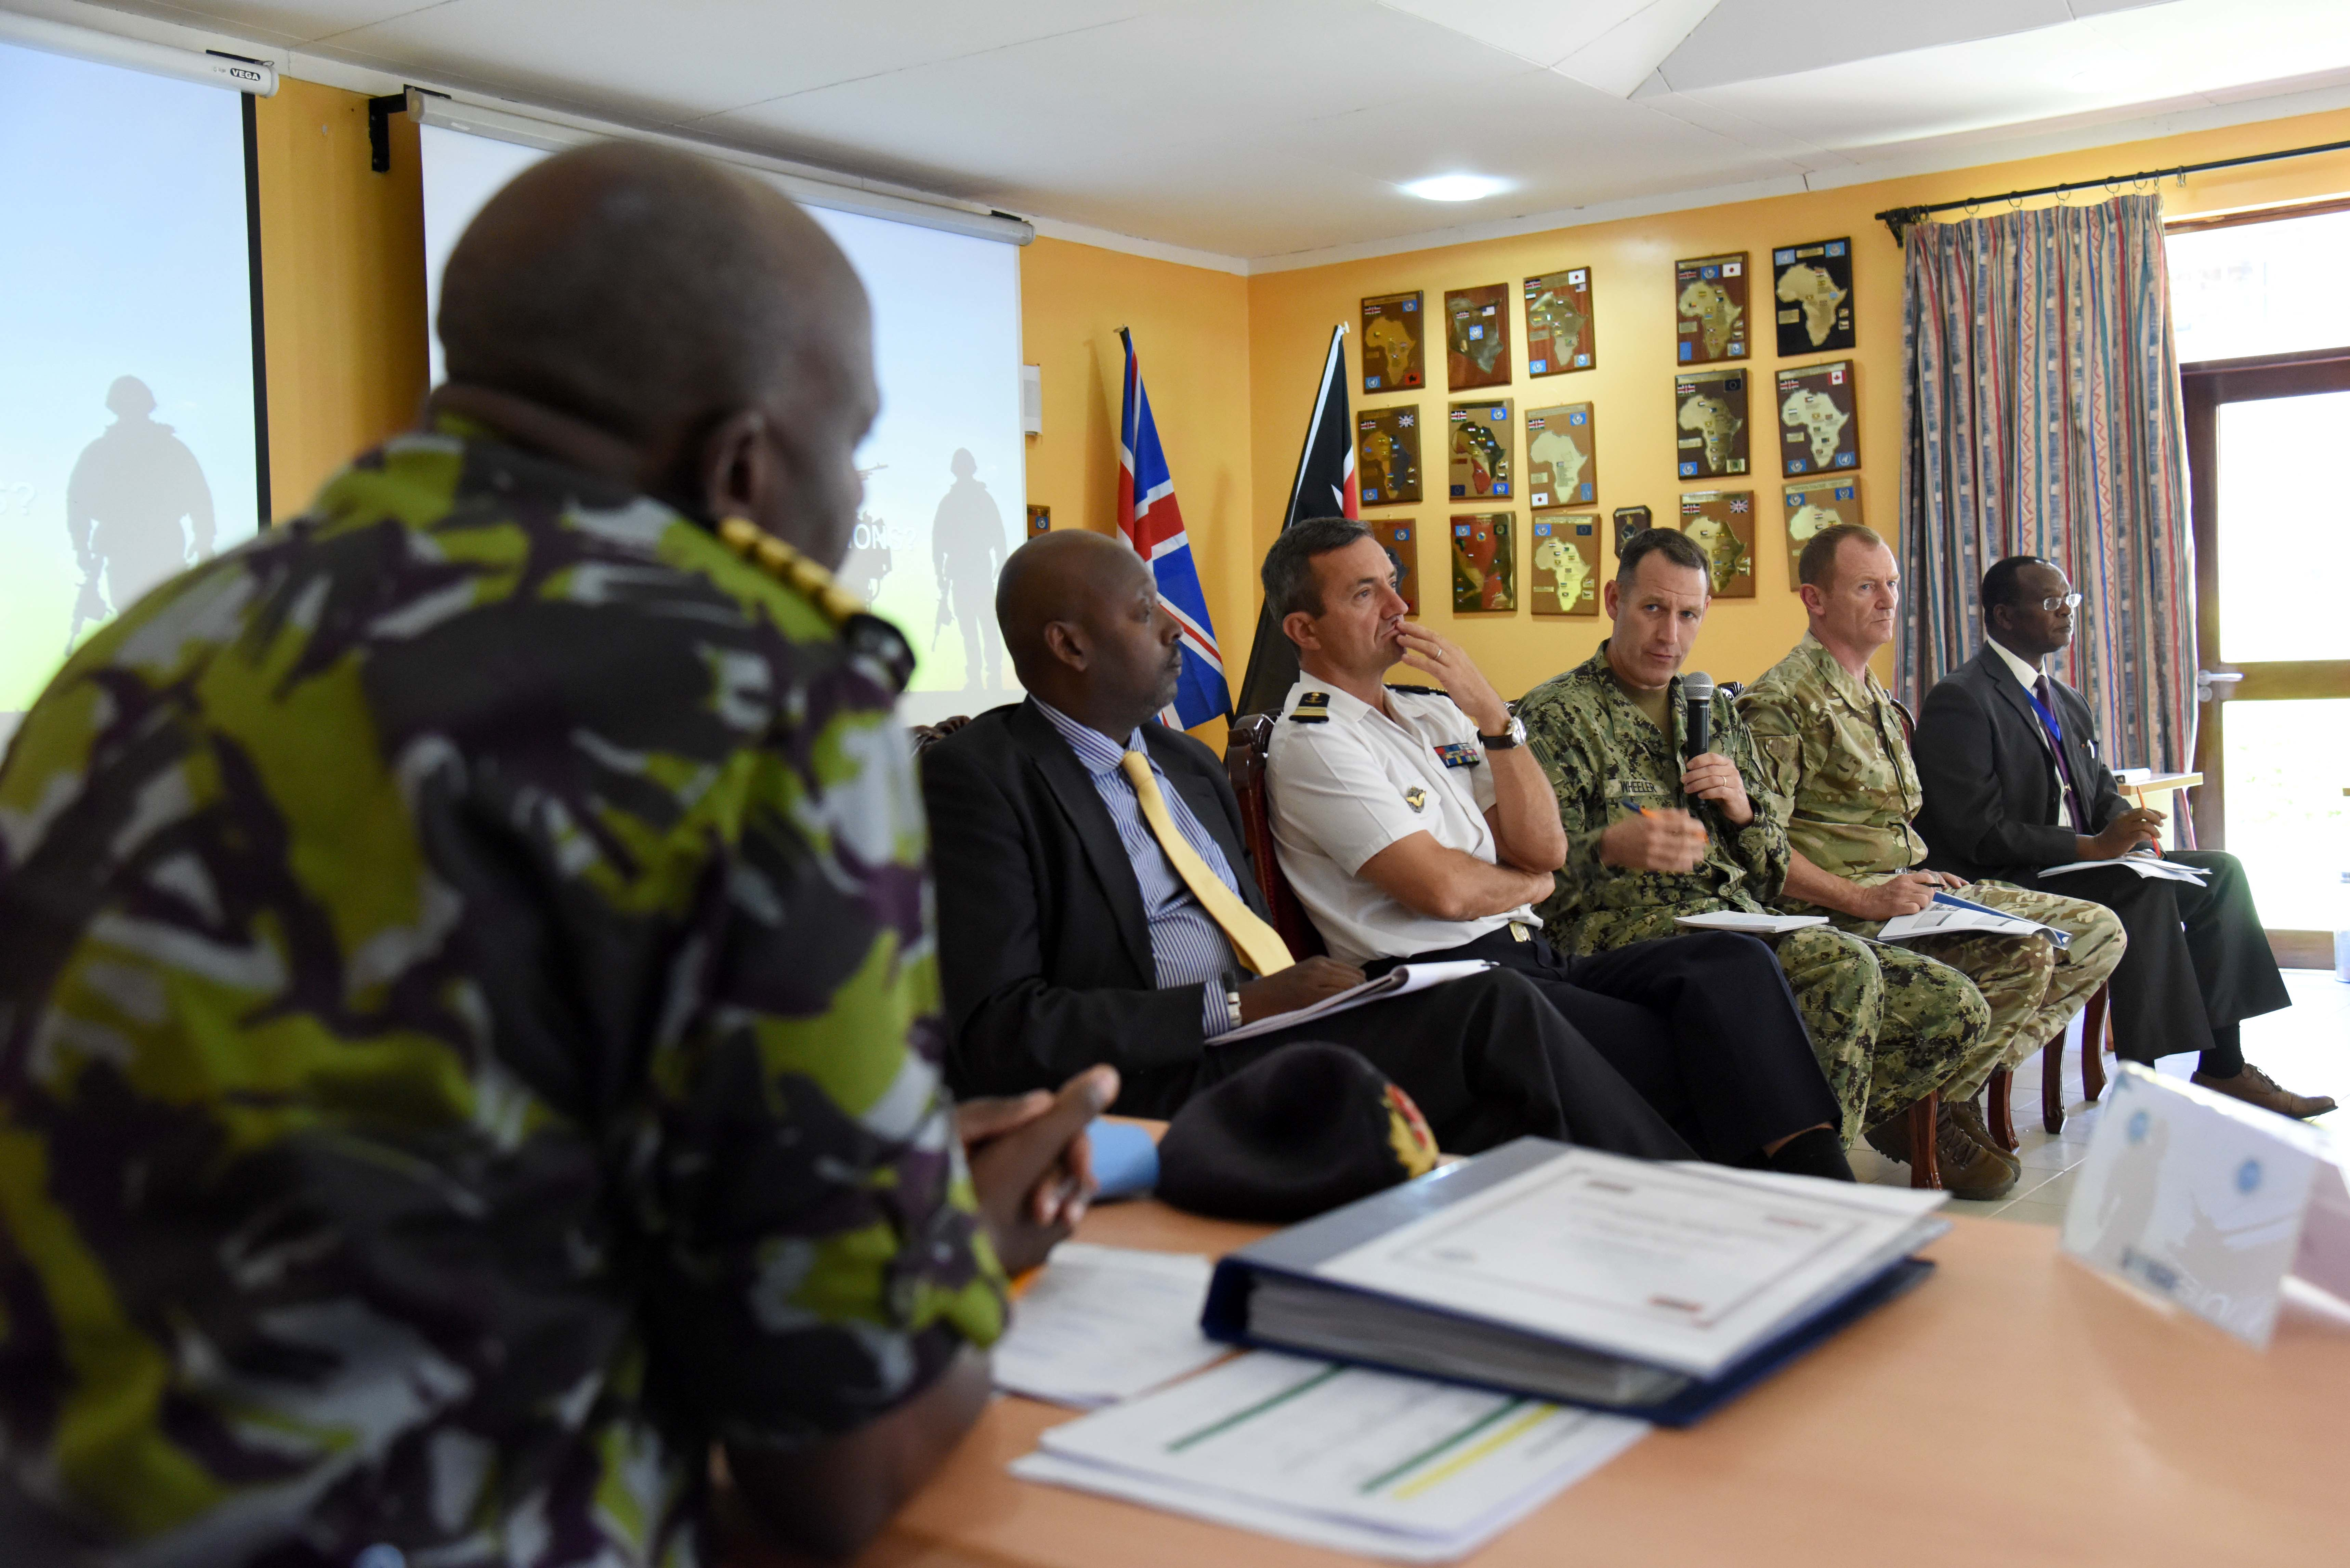 U.S. Navy Rear Adm. Trey Wheeler answers a participant's question during the Regional Senior Mission Leaders Course at the International Peace Support Training Centre in Karen, Kenya, Feb. 17, 2016. As part of the two-week course, attendees from 13 countries, including Burundi, China, Comoros, Denmark, Egypt, Kenya, Malawi, Mali, Rwanda, Somalia, South Sudan, Sudan, and the U.S., participated in a panel discussion featuring visiting senior leaders from prominent organizations working in East Africa. (U.S. Air Force photo by Staff Sgt. Victoria Sneed)